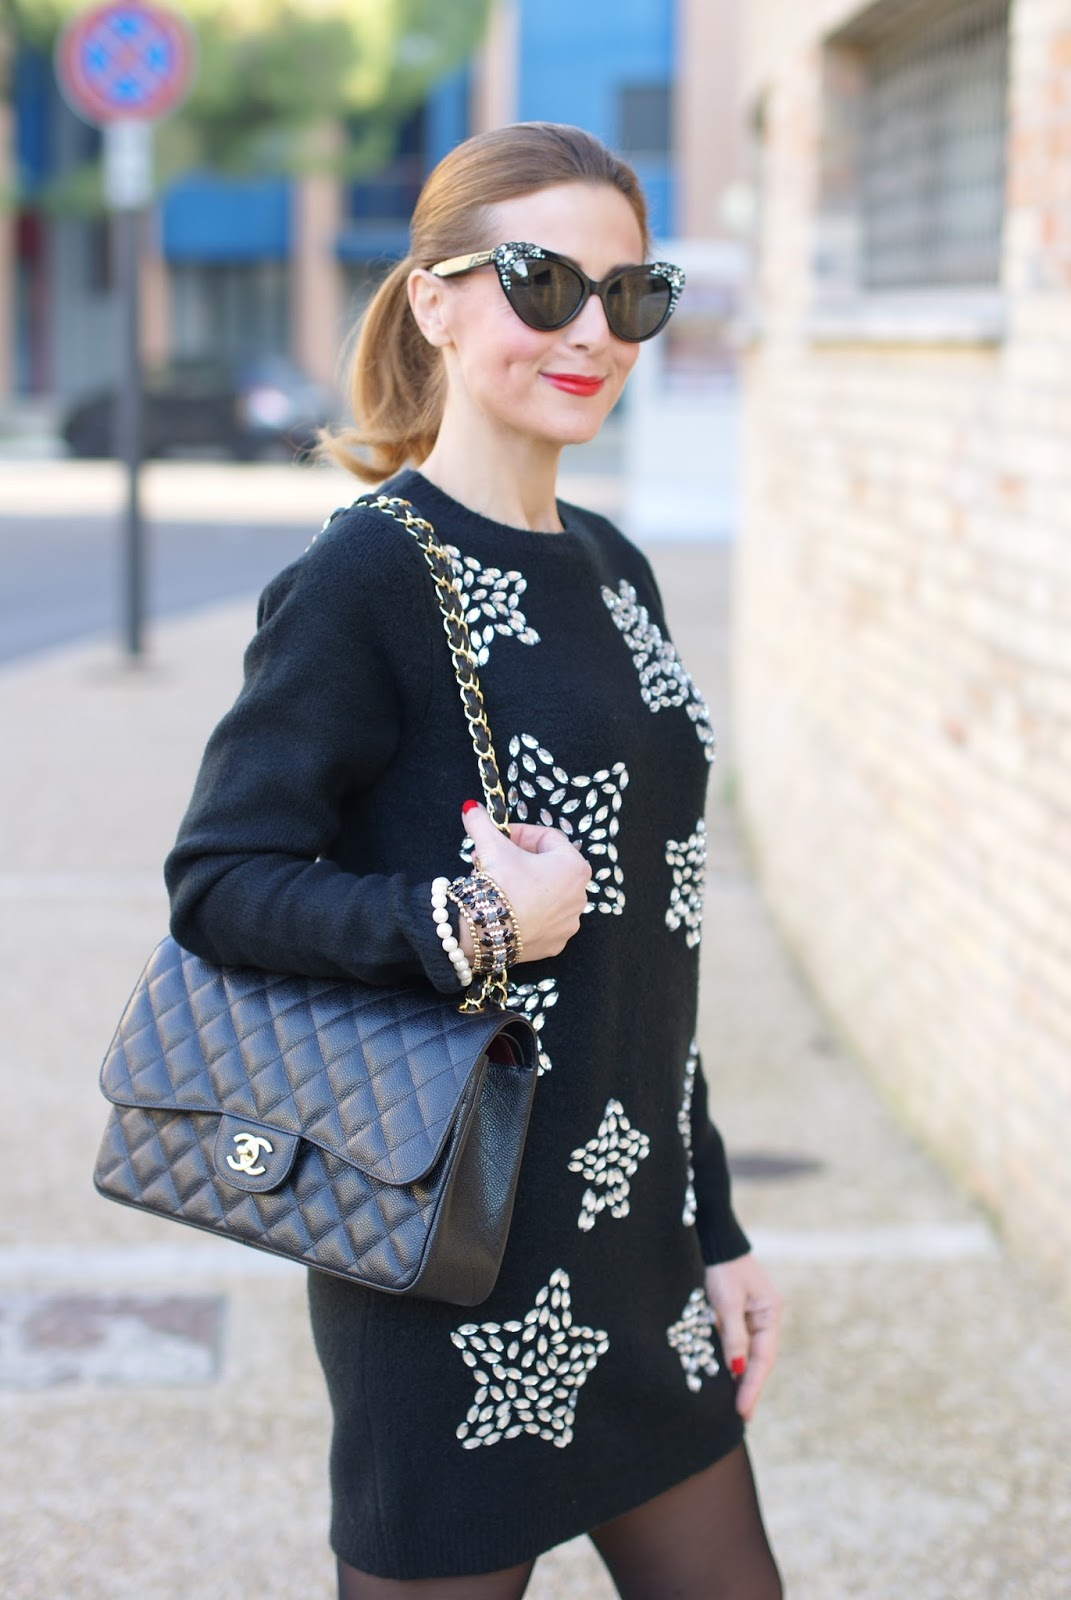 starry jeweled Asos dress, and chanel 2.55 bag on Fashion and Cookies fashion blog, fashion blogger style